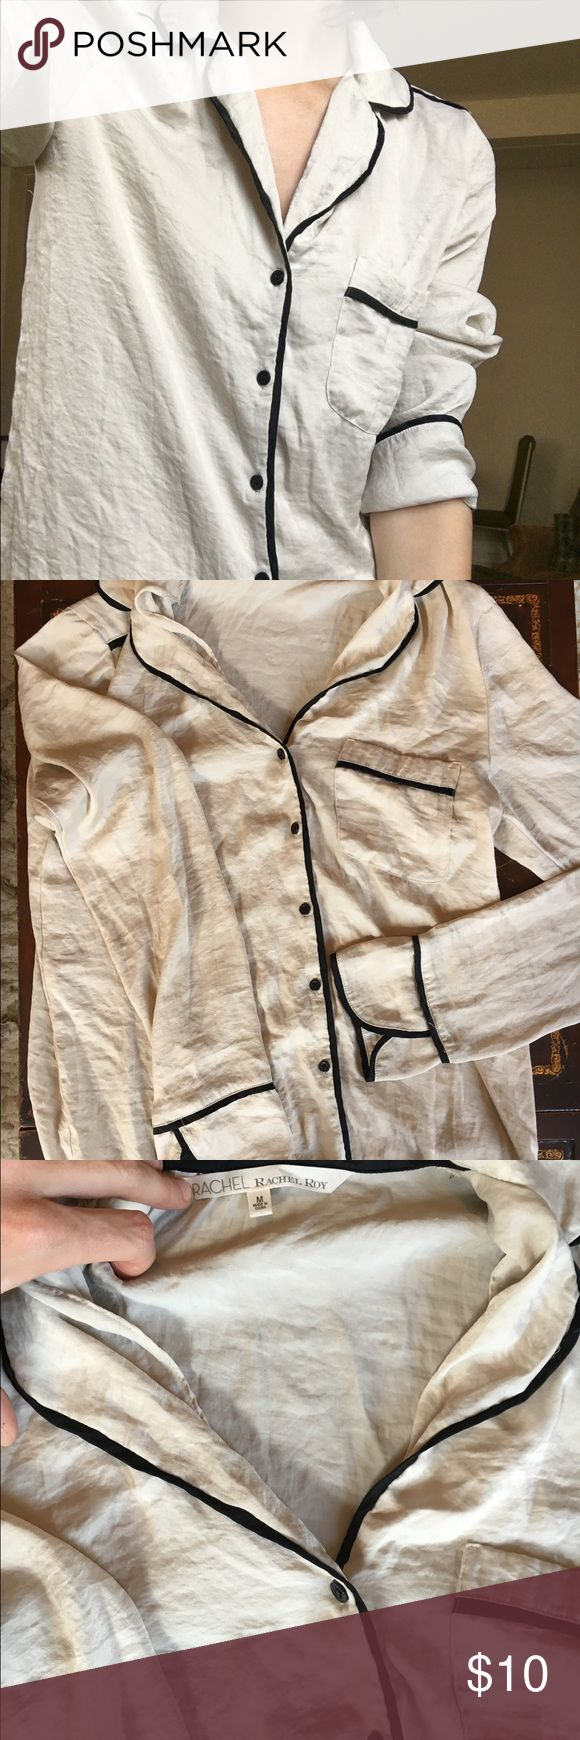 Rachel Roy Cream Colored Button Down Dress Shirt- too big on me but would look great with a blazer for a work outfit. RACHEL Rachel Roy Tops Button Down Shirts